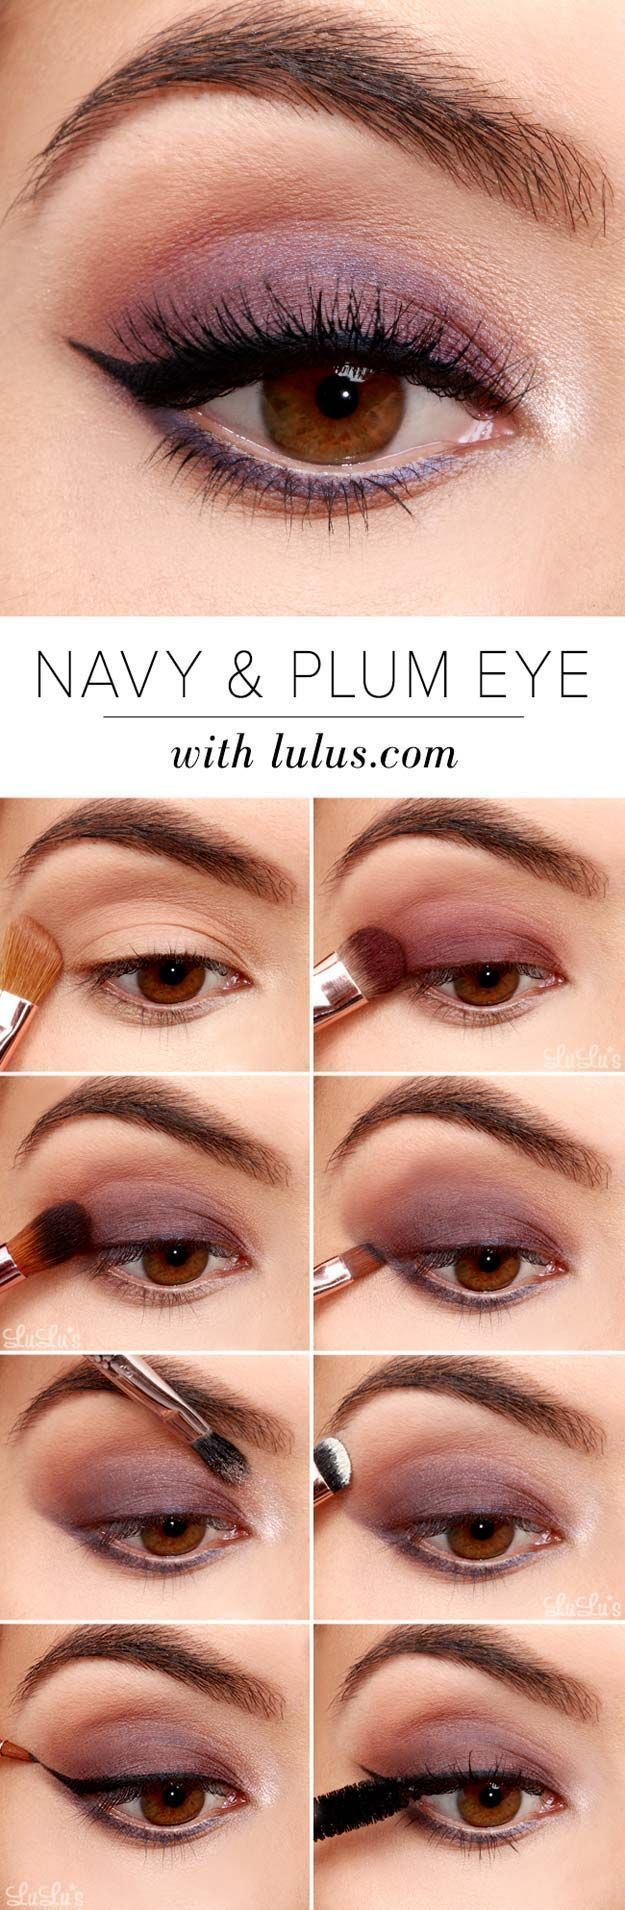 Best Eyeshadow Tutorials - Navy and Plum Smokey Eyeshadow Tutorial - Easy Step by Step How To For Eye Shadow - Cool Makeup Tricks and Eye Makeup Tutorial With Instructions - Quick Ways to Do Smoky Eye, Natural Makeup, Looks for Day and Evening, Brown and Blue Eyes - Cool Ideas for Beginners and Teens http://diyprojectsforteens.com/best-eyeshadow-tutorials #eyeshadowsforbeginners #makeuplooksforteens